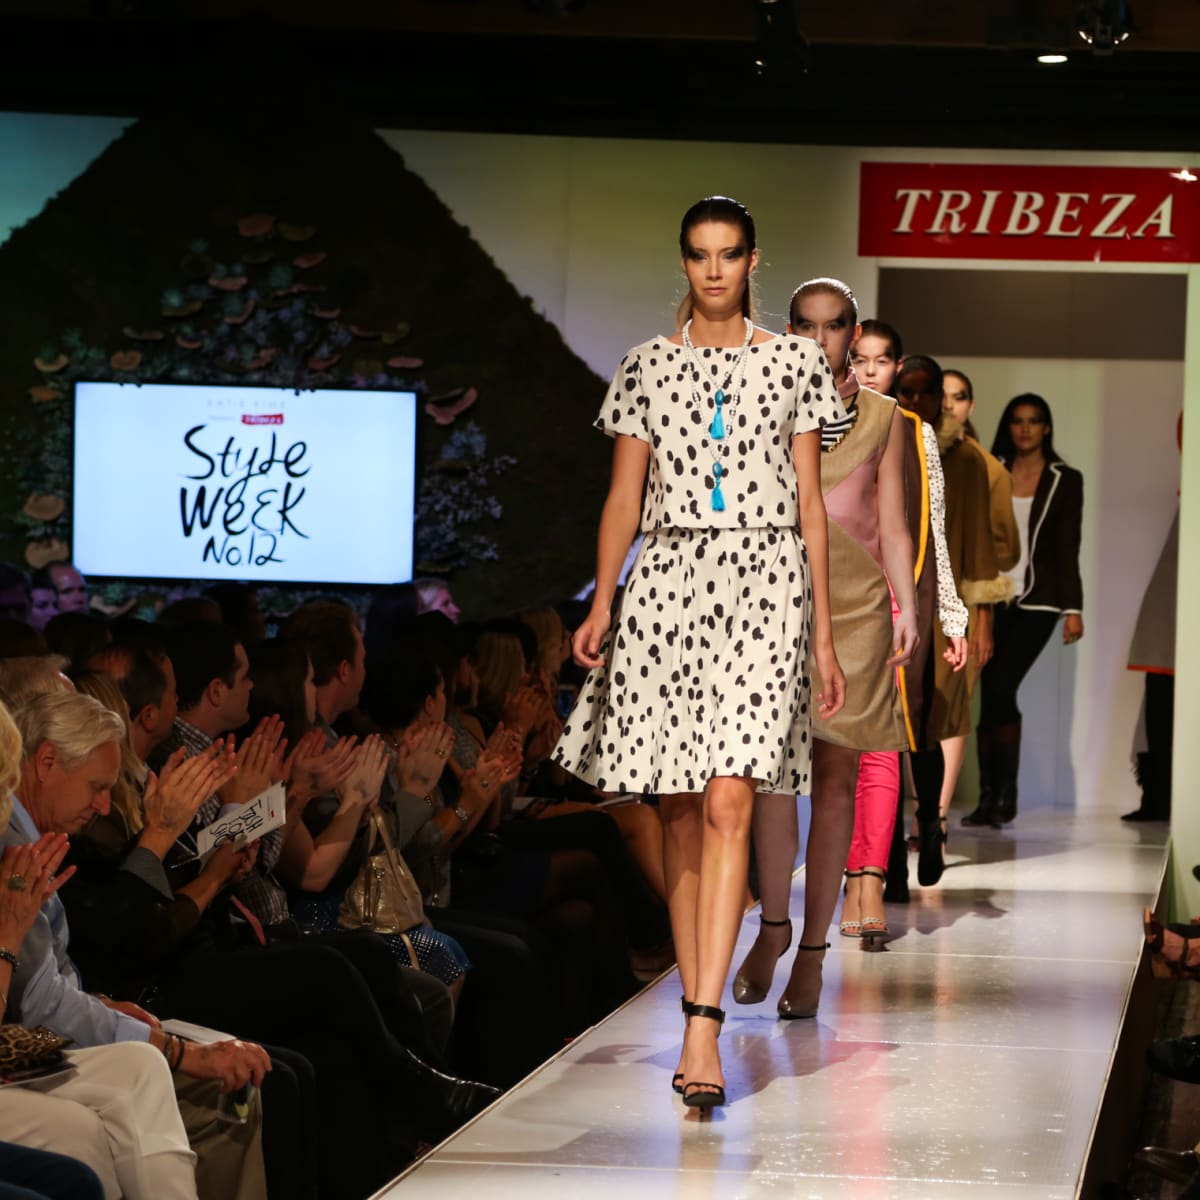 Tribeza Fashion Show 2015 at Brazos Hall